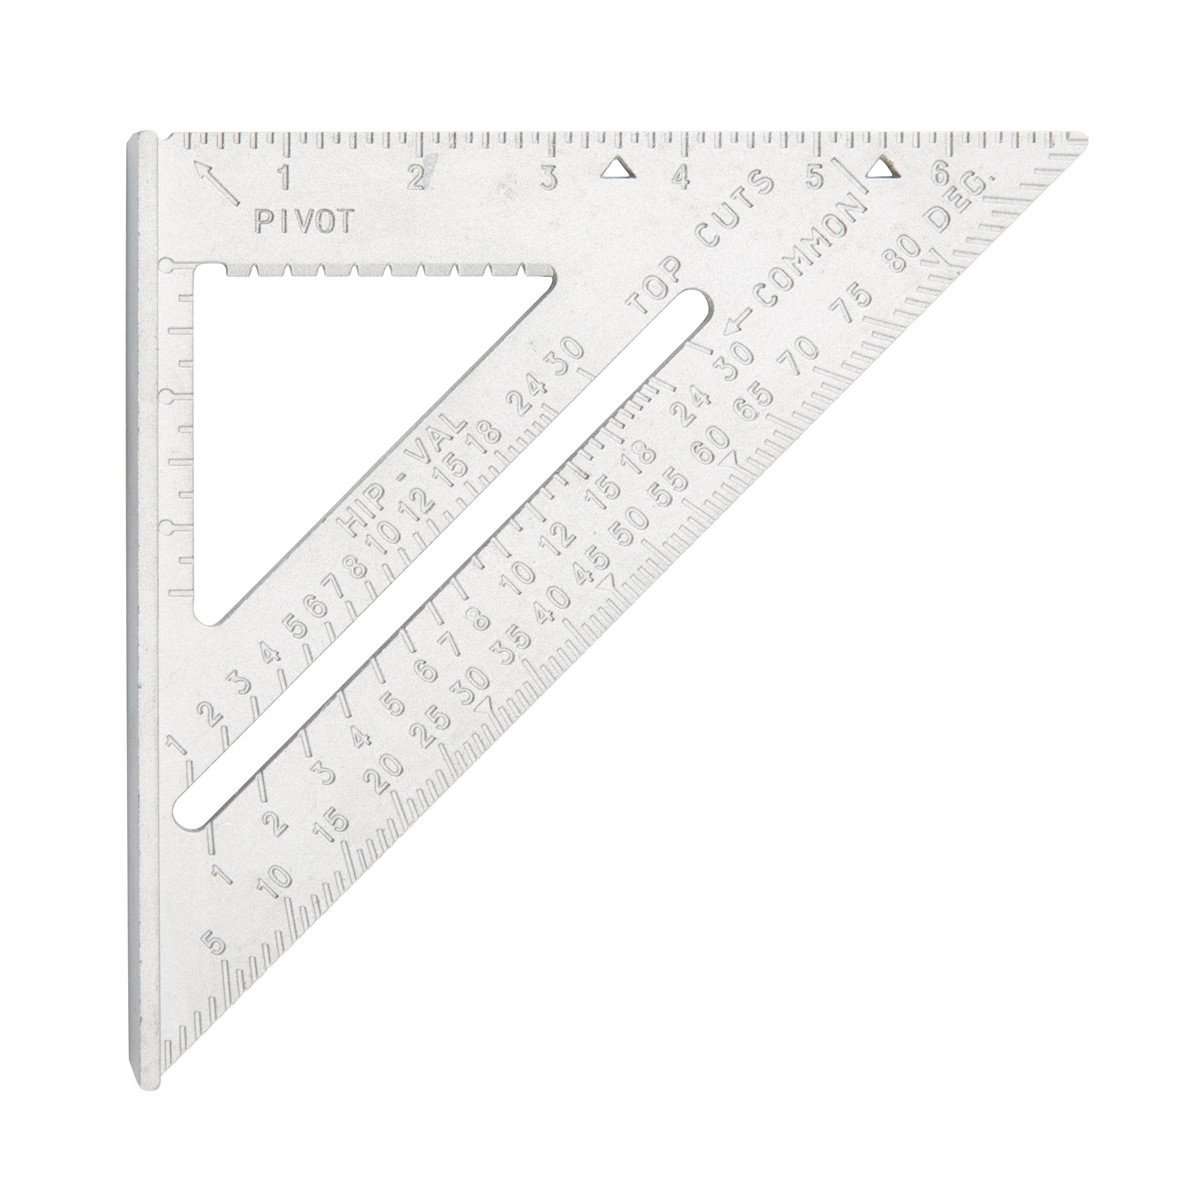 New   Pittsburgh  4-in-1 Aluminum Rafter Angle Square